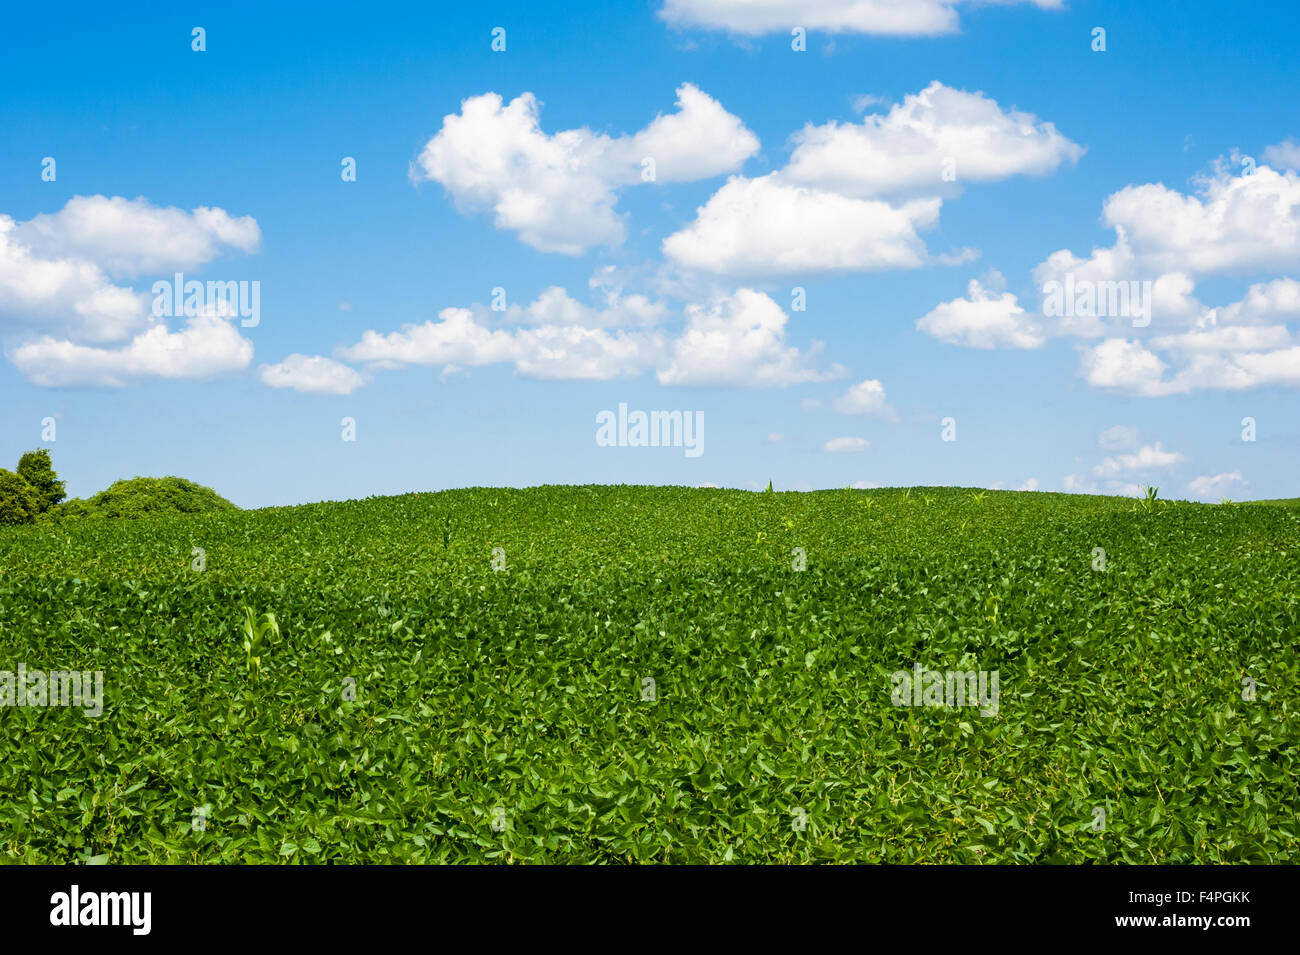 Lush rolling green agricultural farm field hills horizon against fluffy cumulus clouds on blue sky. - Stock Image